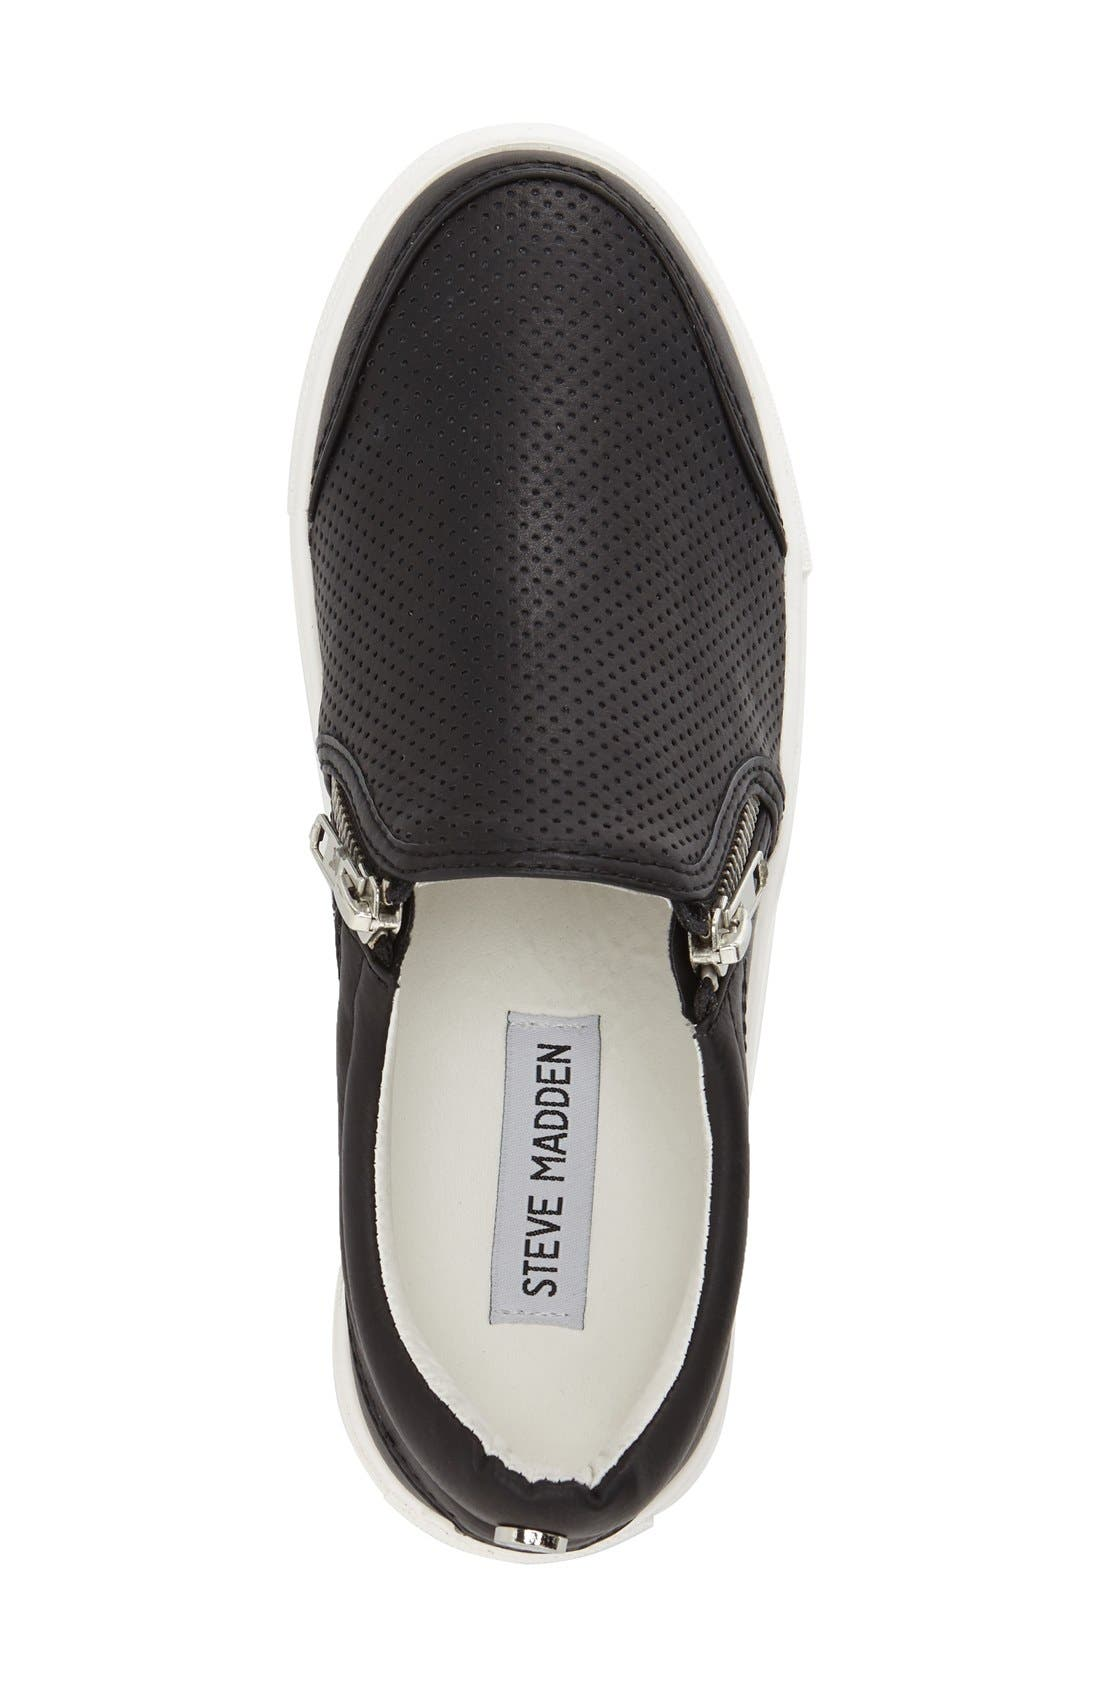 Alternate Image 3  - Steve Madden 'Ellias' Slip-On Sneaker (Women)